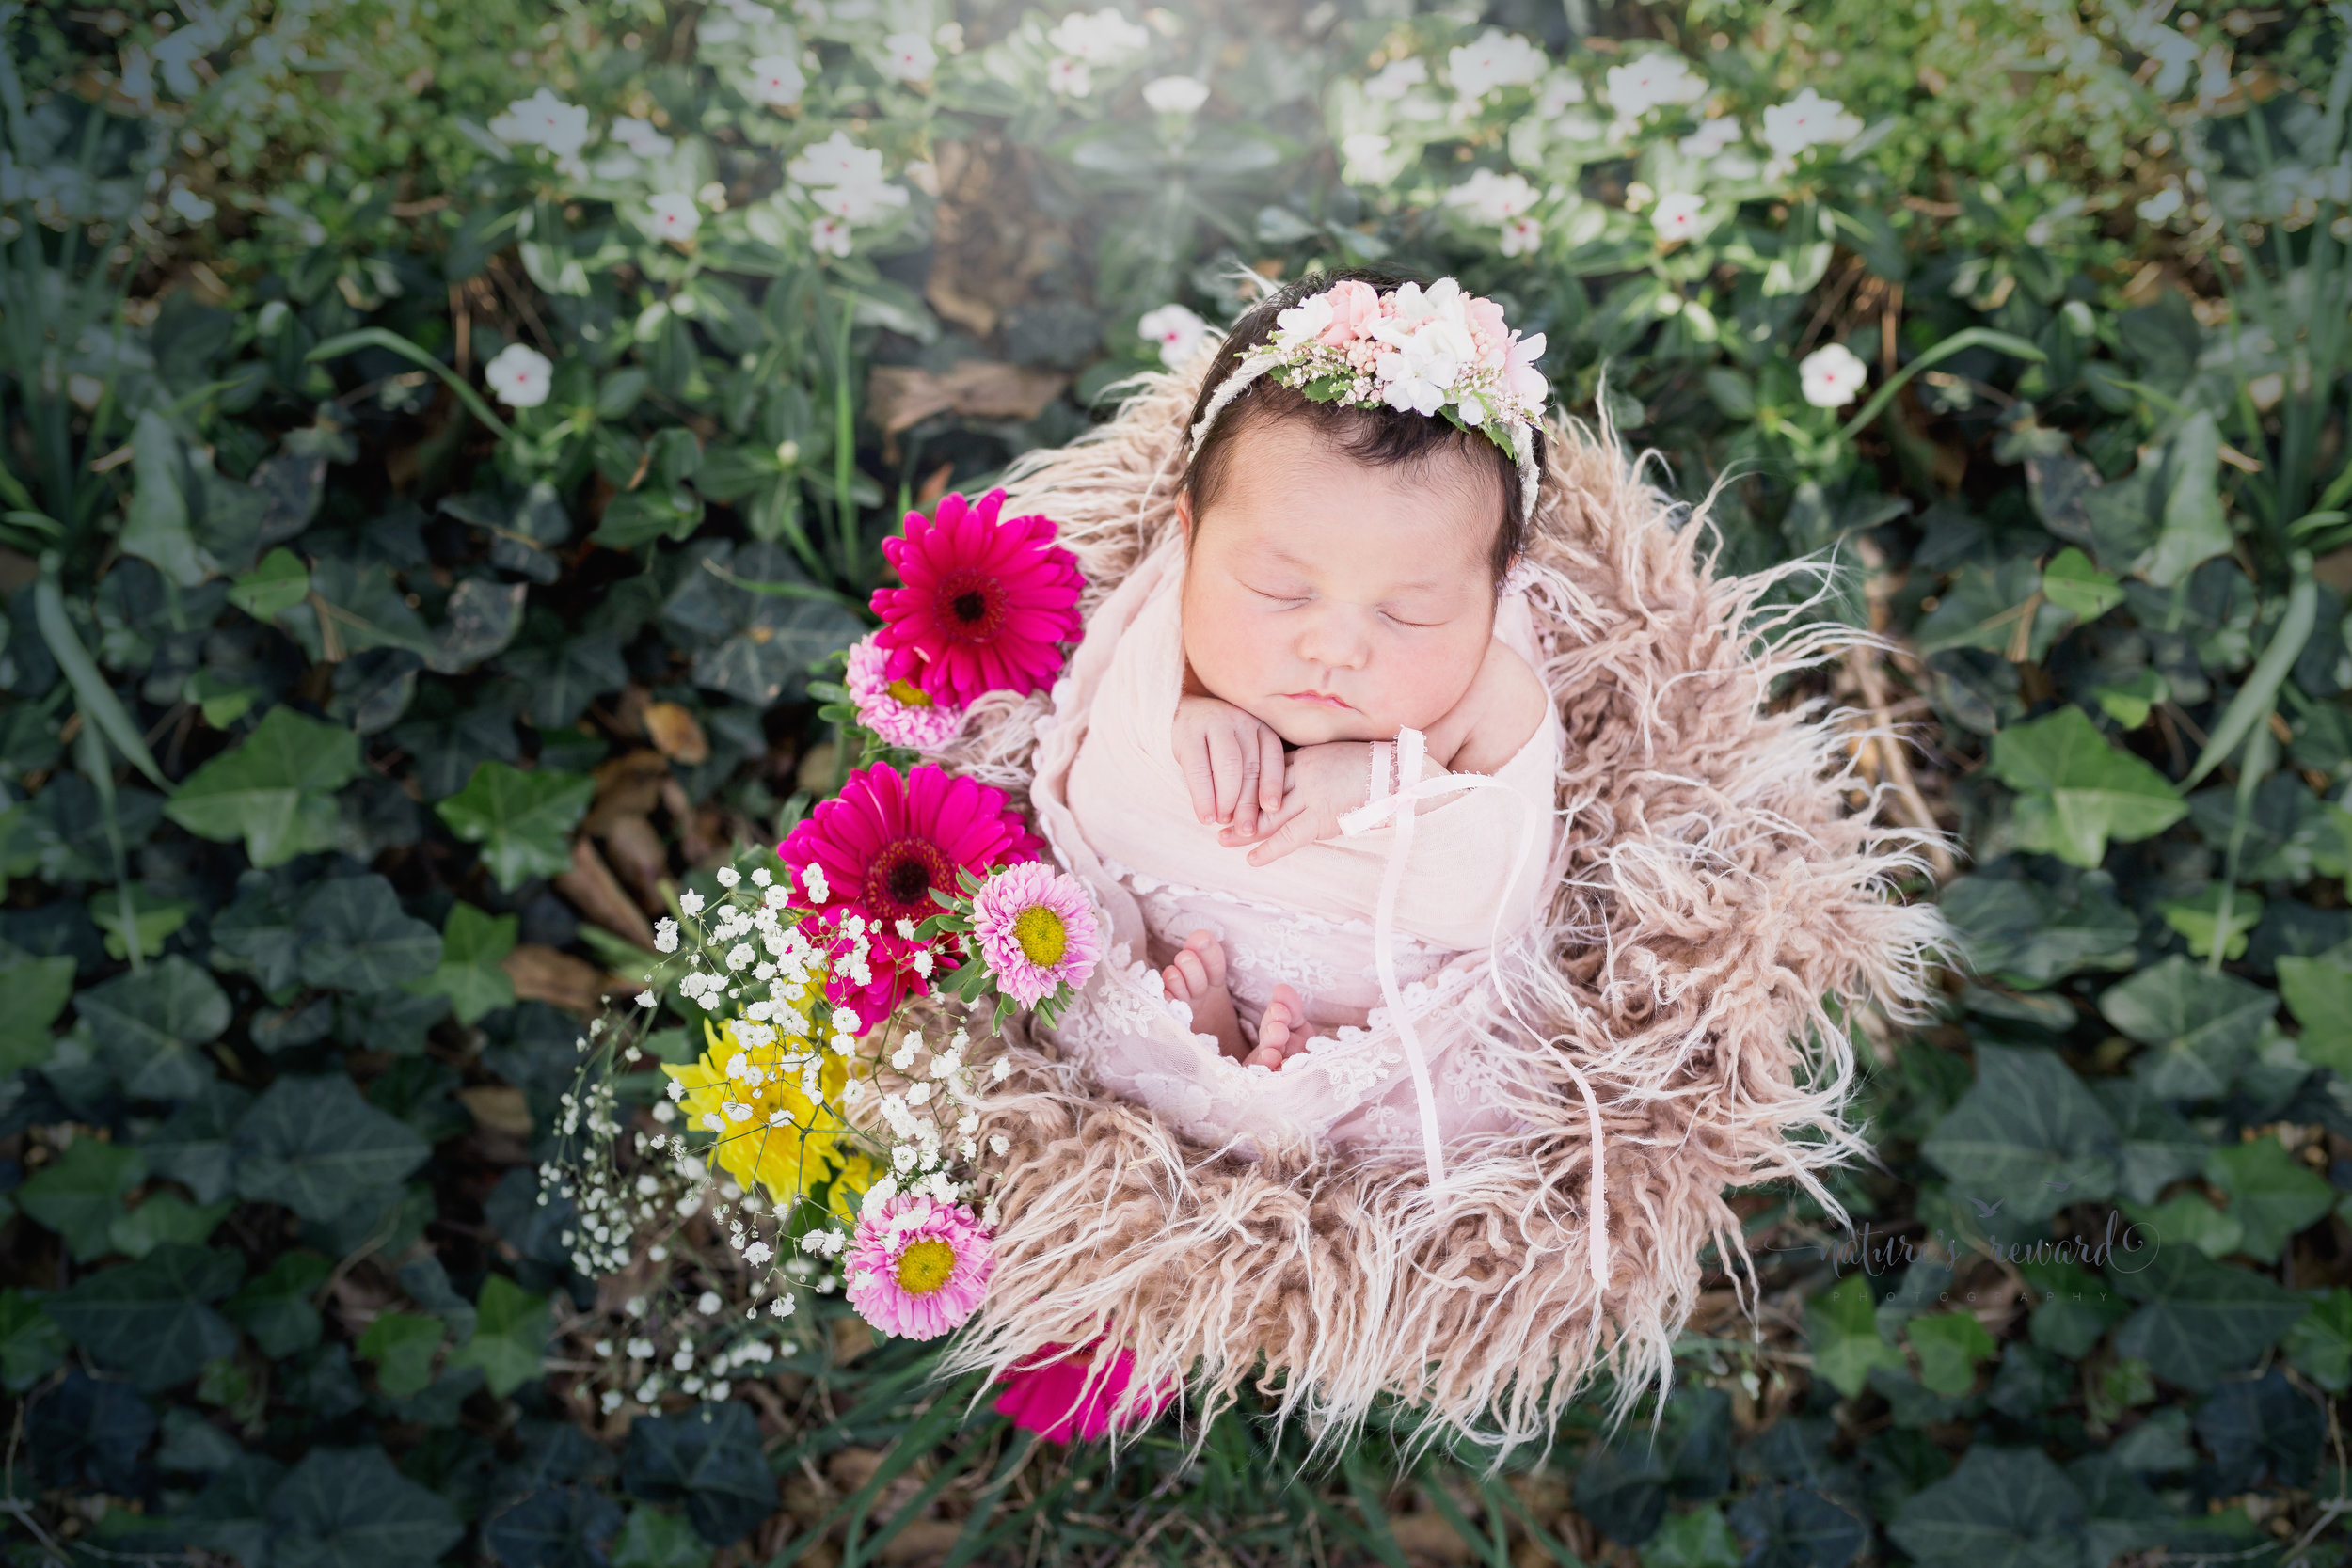 This sweet newborn baby girl portrait in a bucket of fur in an ivy garden with accented flowers while she is swaddled in pink and lace wearing a flower crown and a pink ribbon bracelet in this piece by Southern California Newborn and Family Photographer Nature's Reward Photography